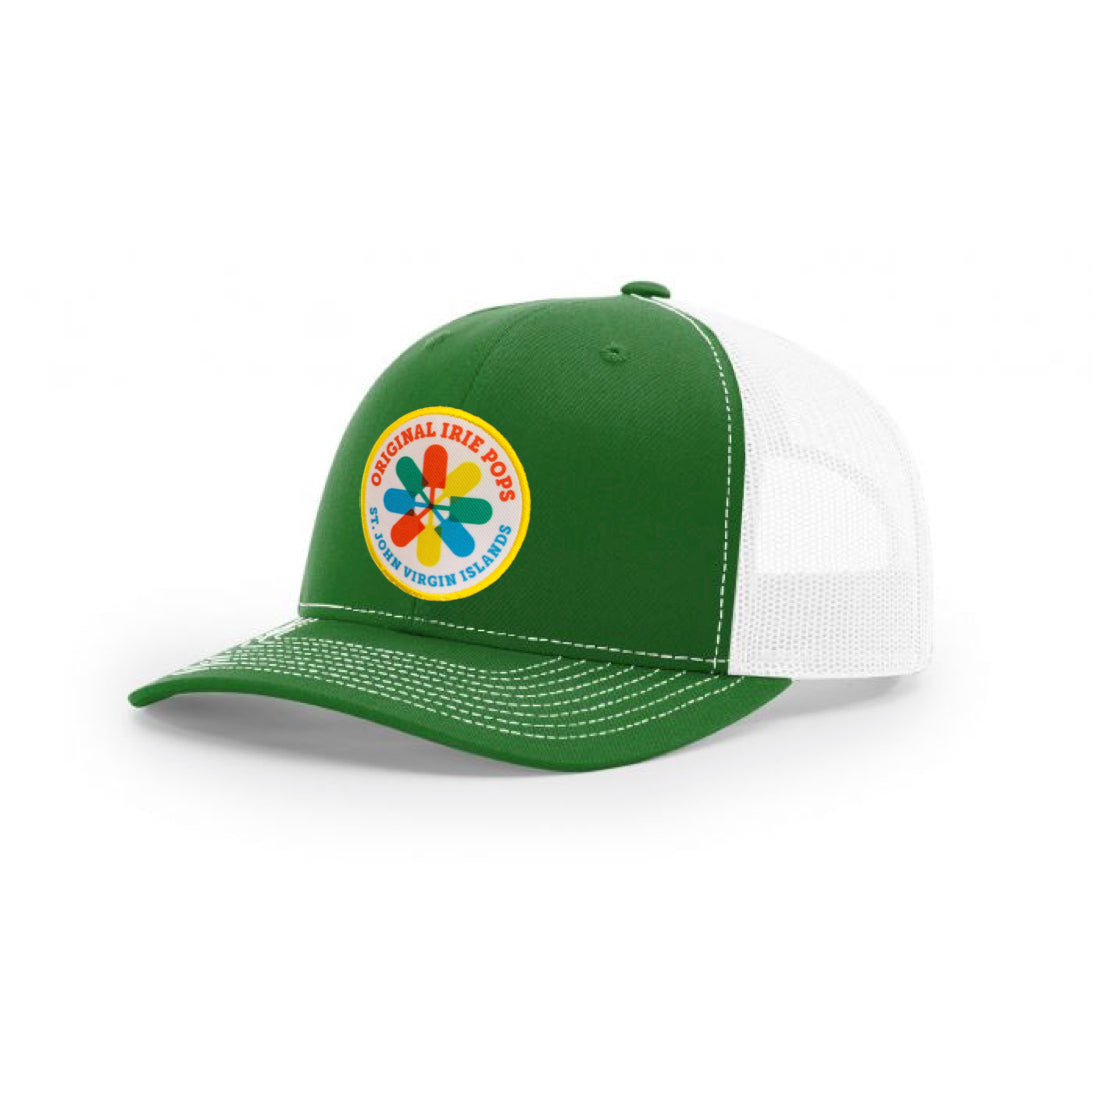 original irie trucker hat